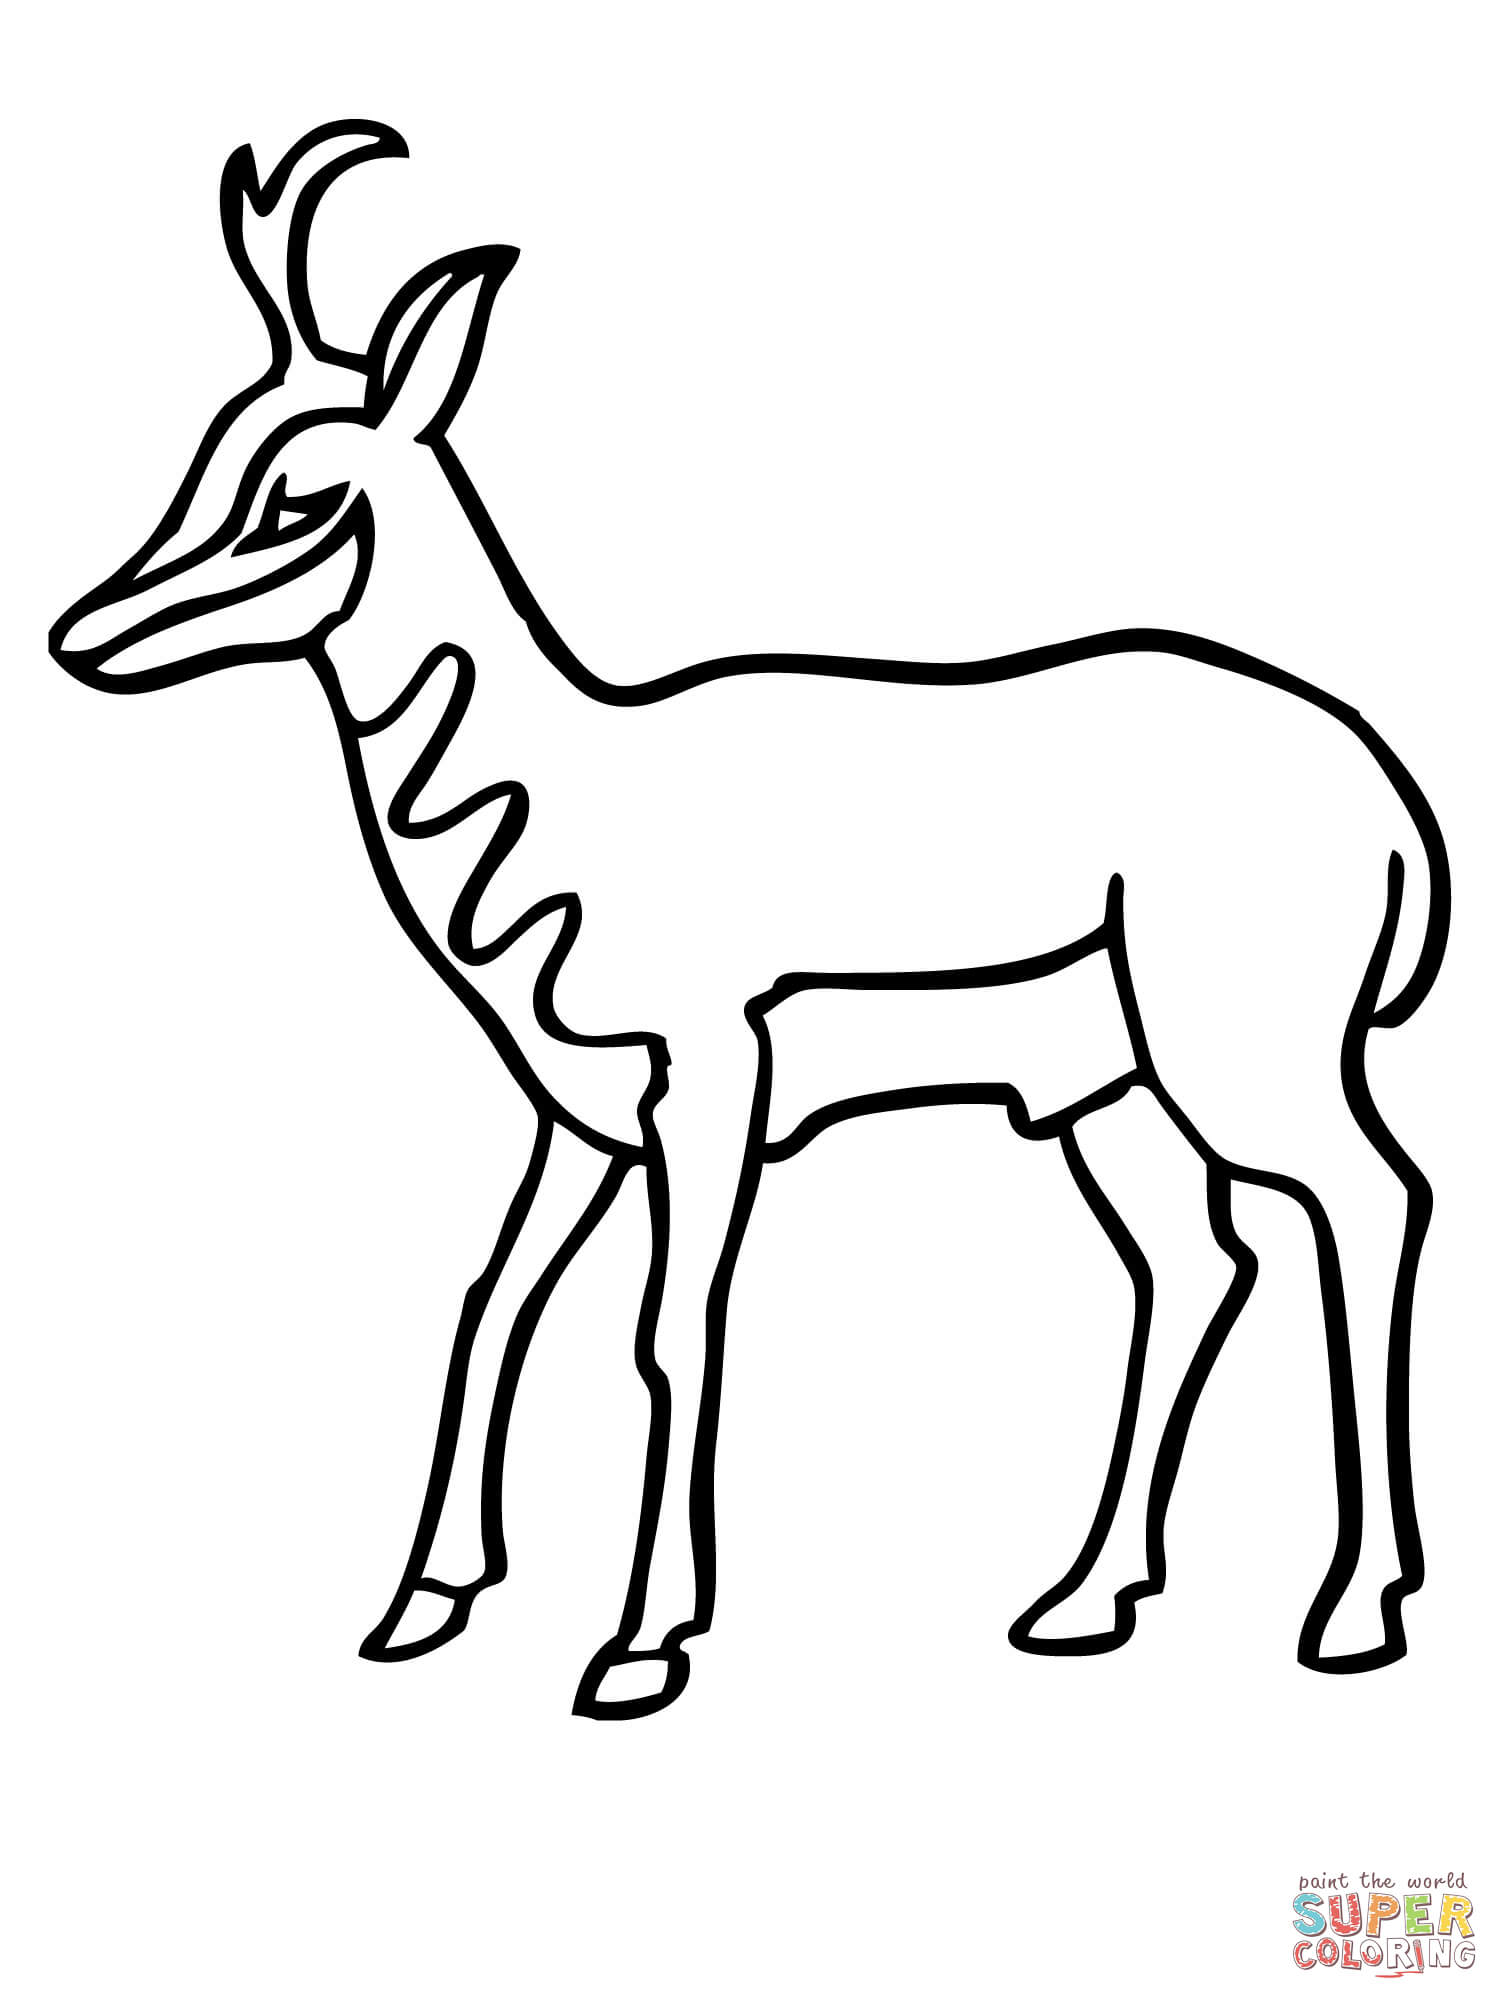 Pronghorn Antelope clipart #3, Download drawings